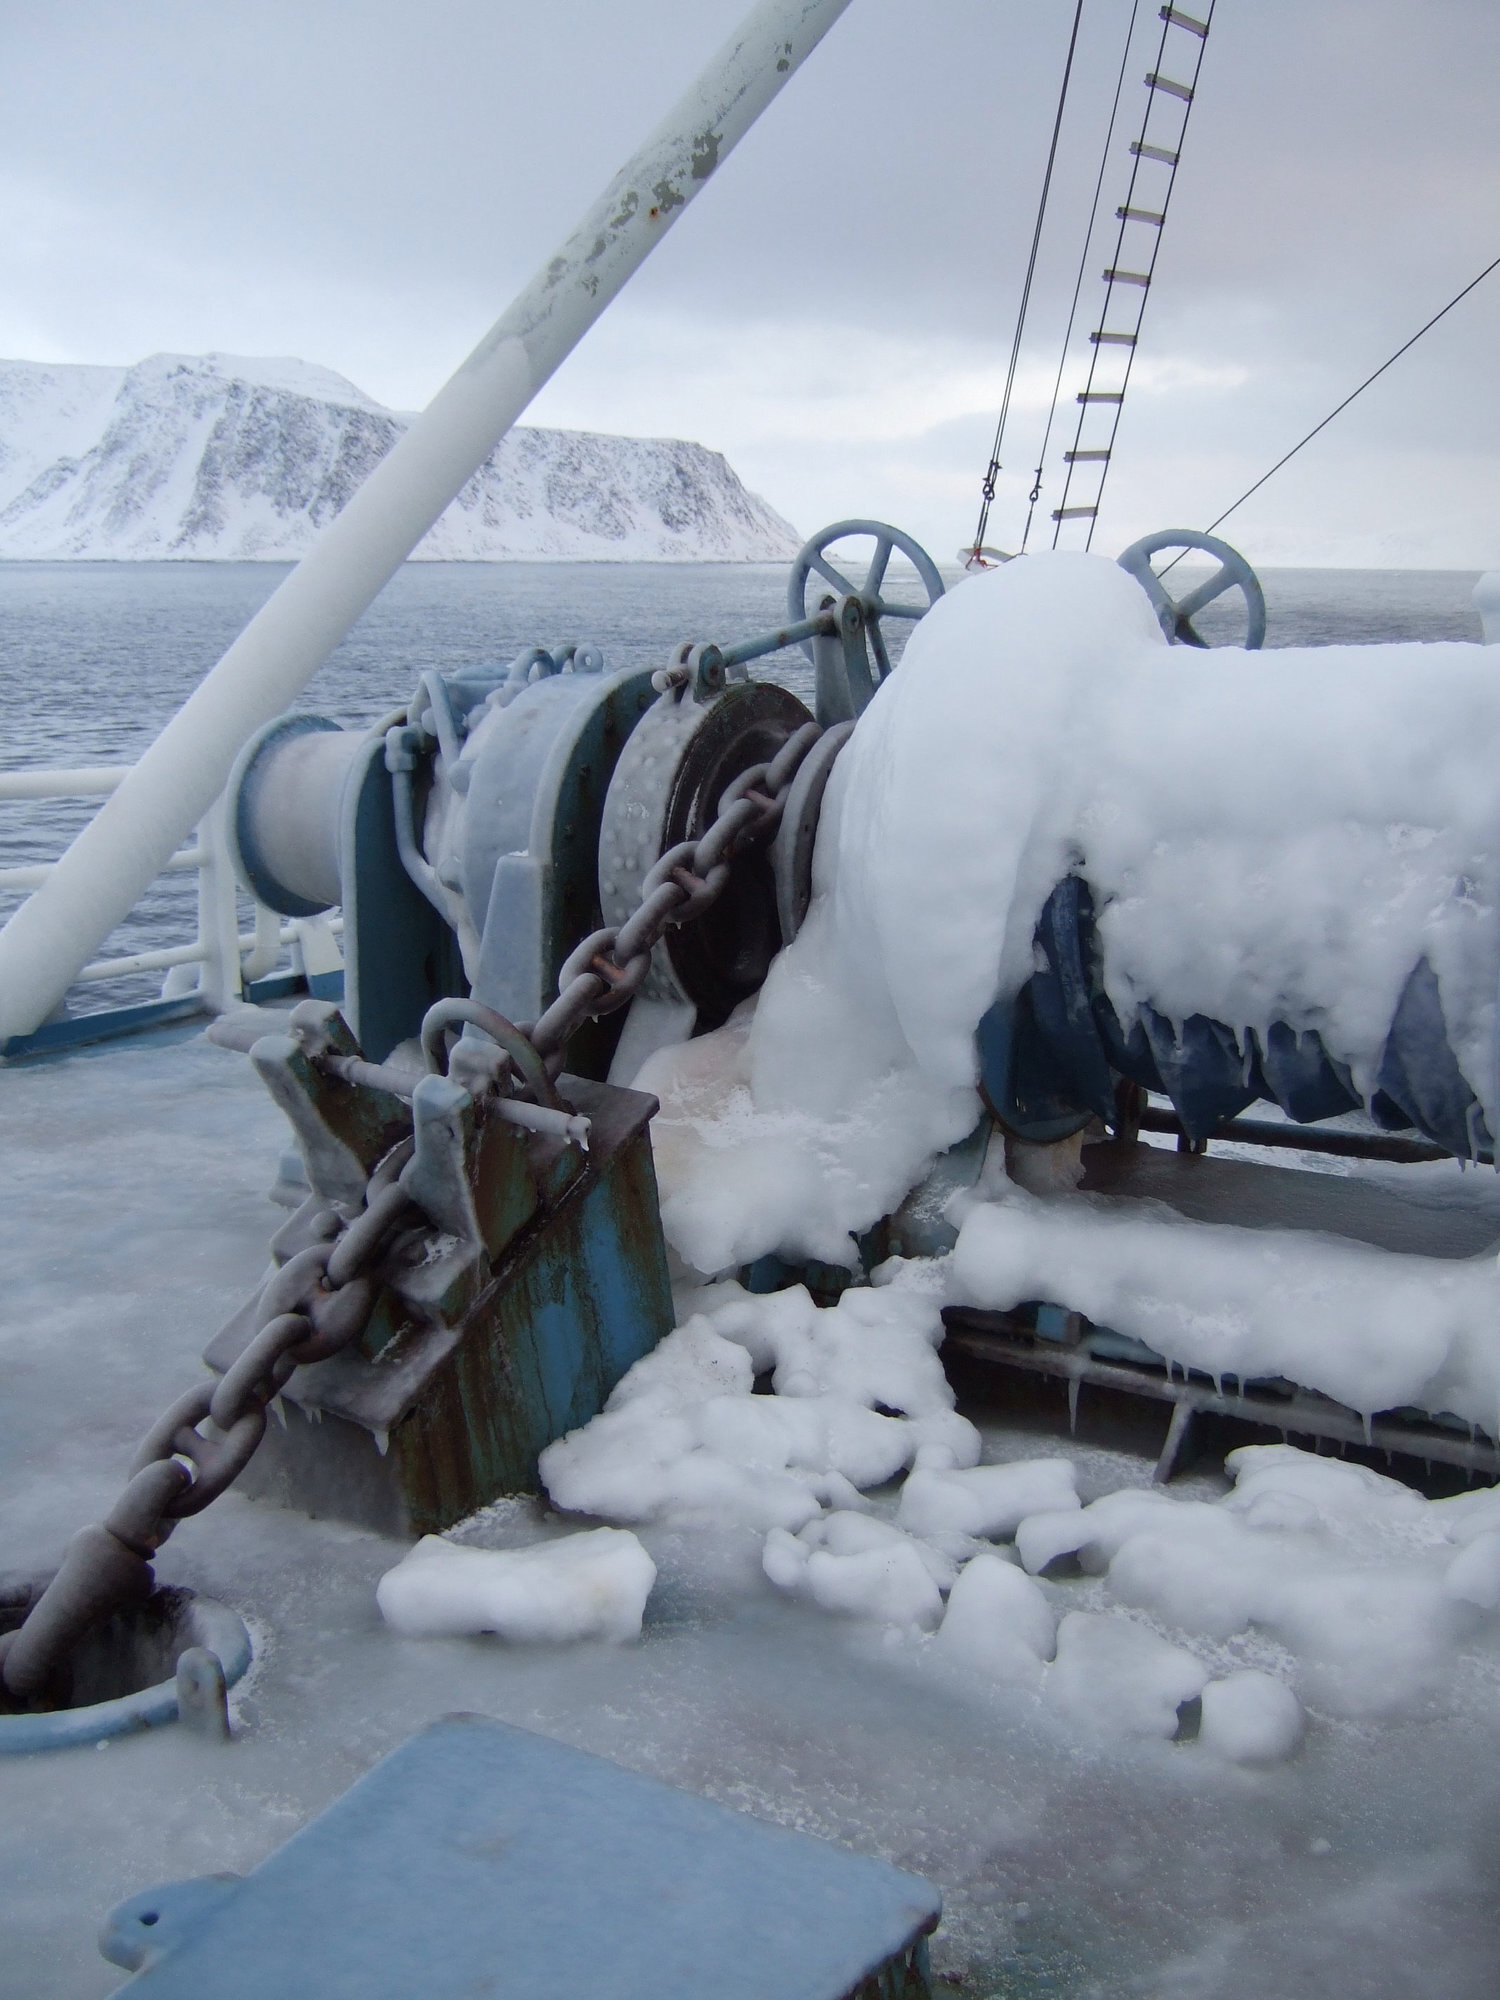 Icing on research vessel Lance. Photo: Eli Anne Ersdall.